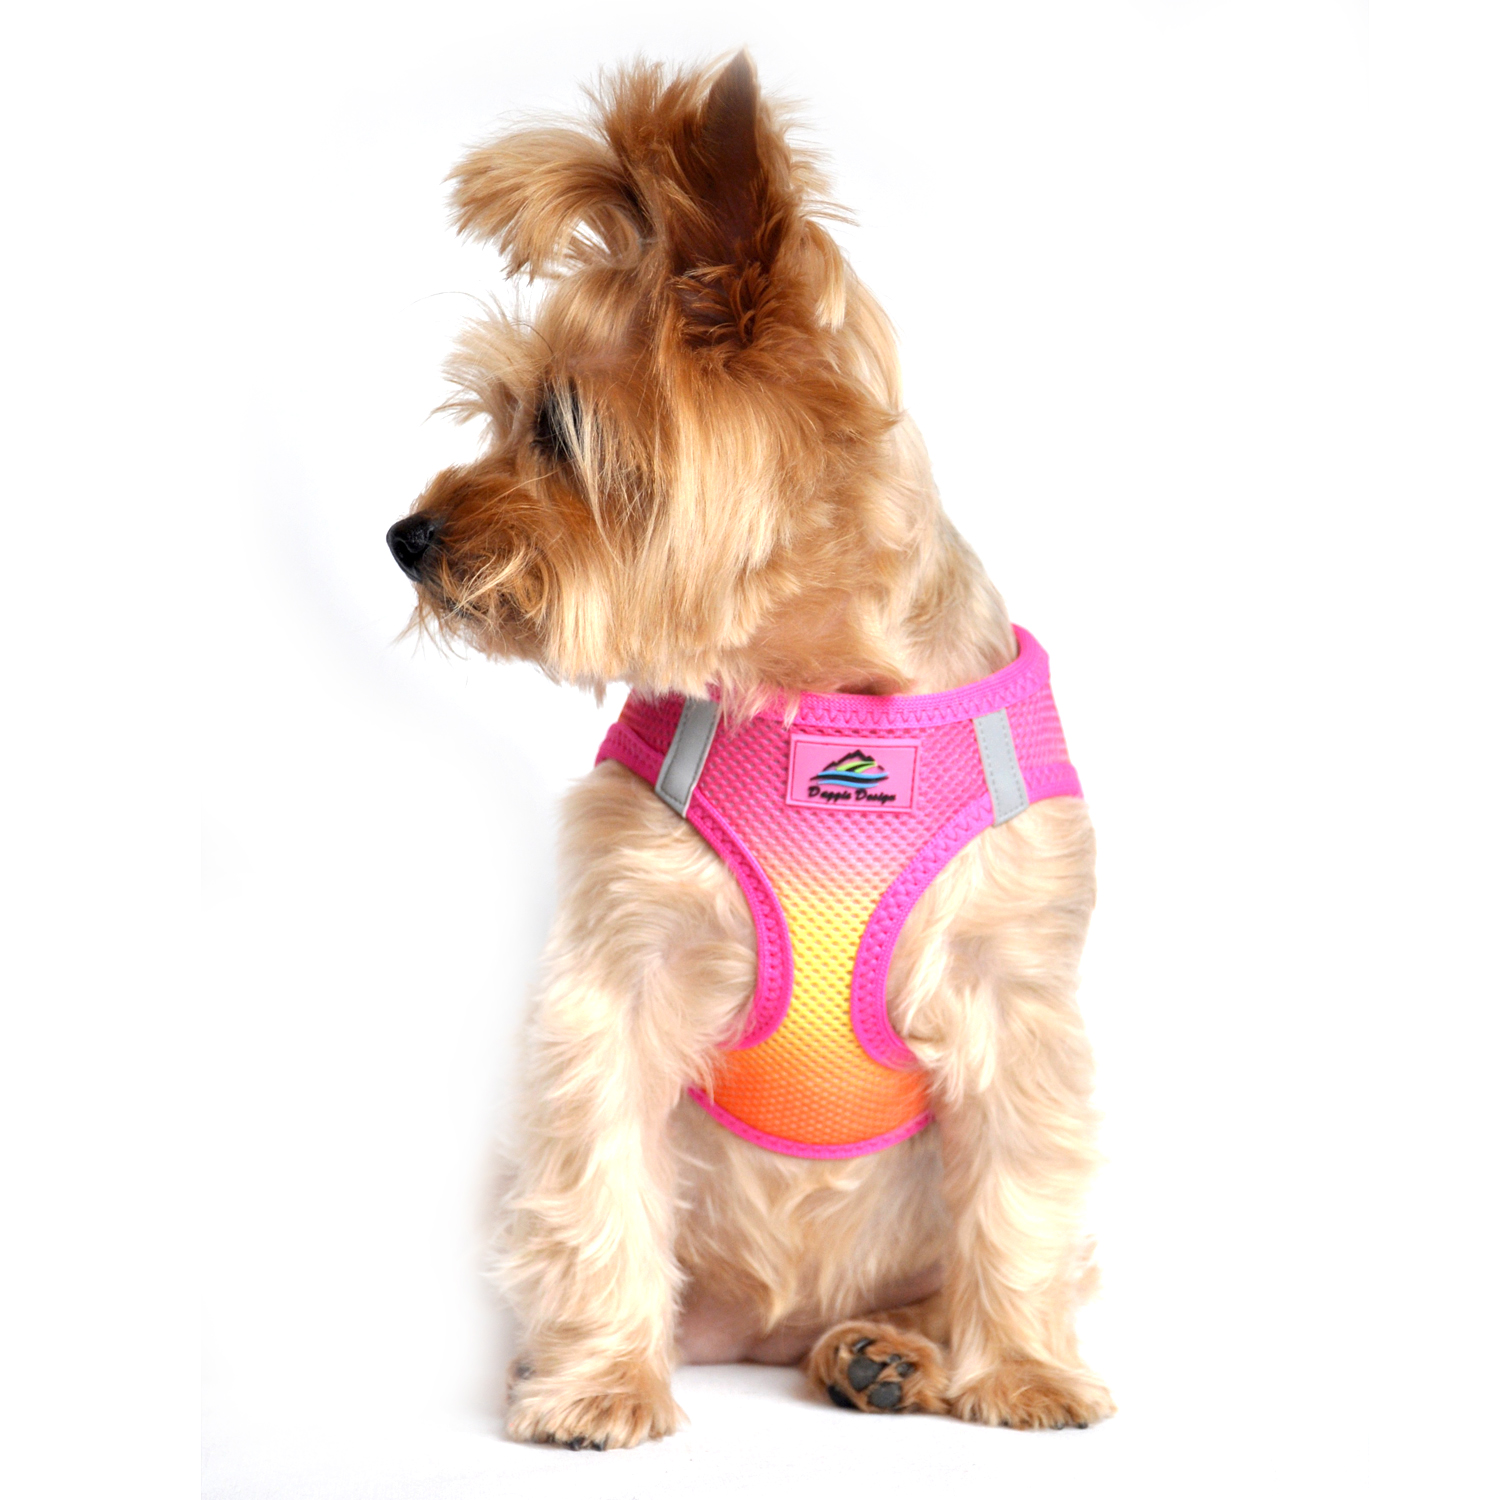 American River Choke-Free Dog Harness by Doggie Design - Raspberry and Orange Sorbet Ombre